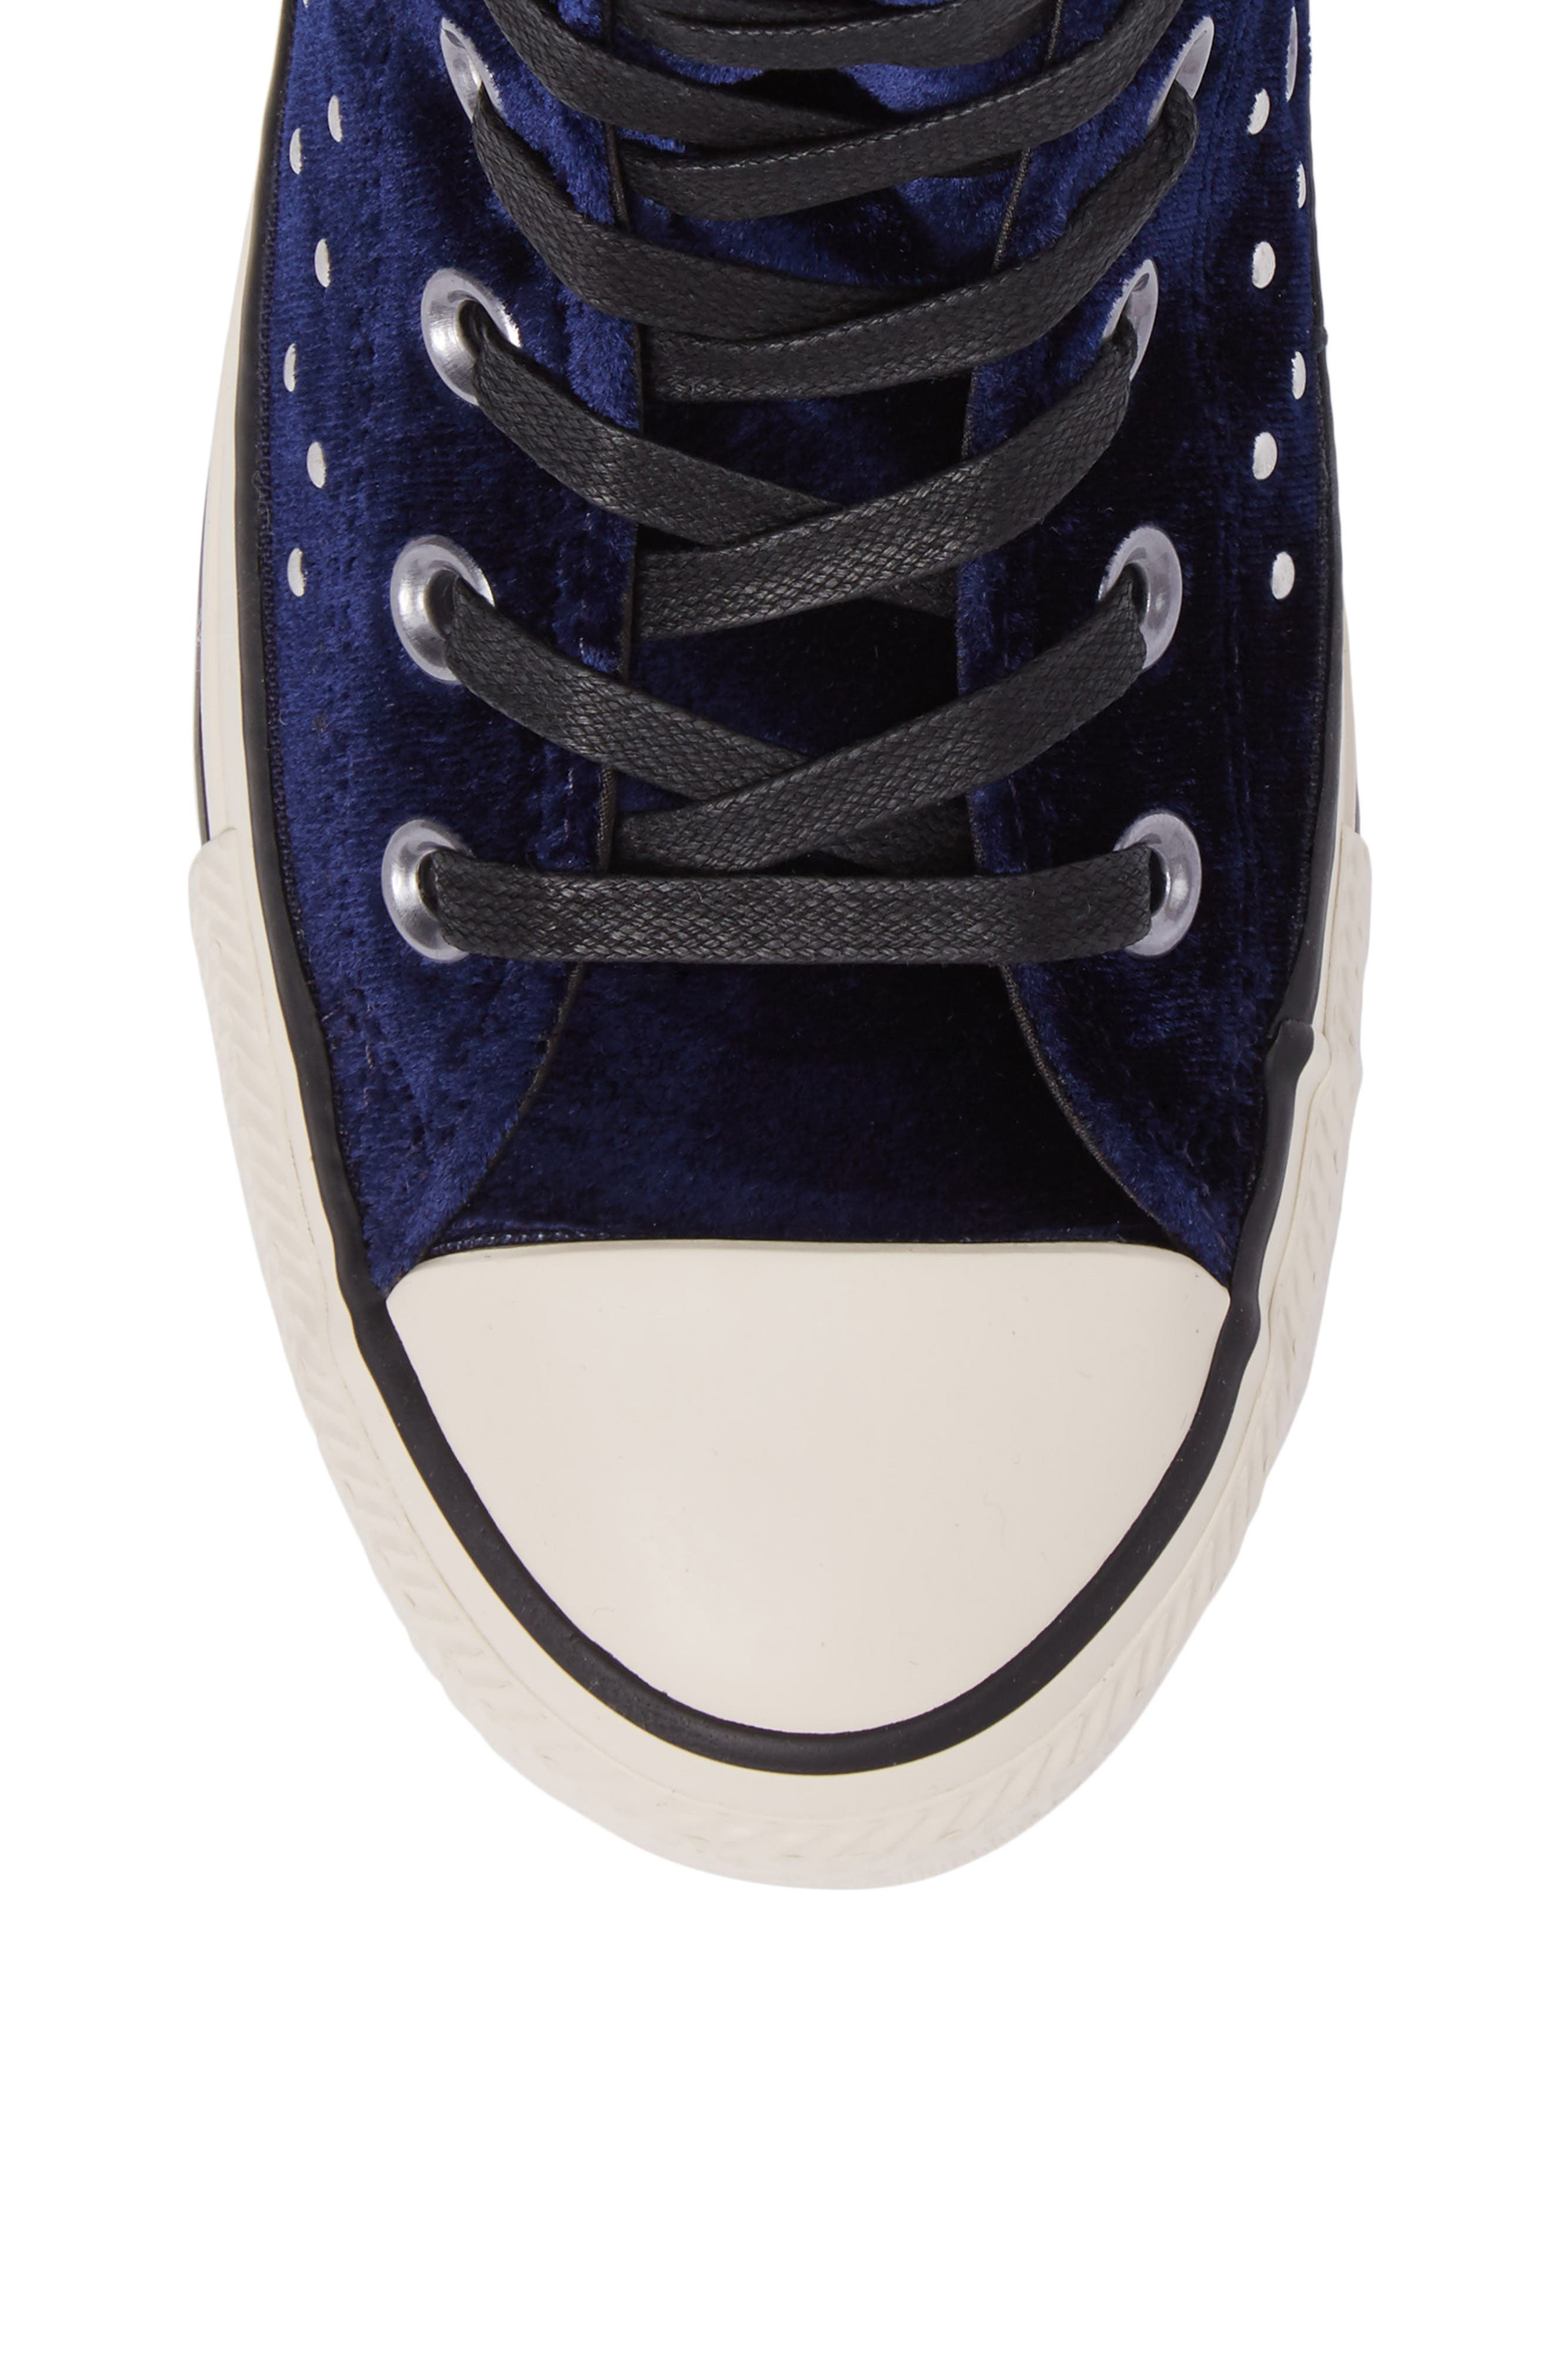 Chuck Taylor<sup>®</sup> All Star<sup>®</sup> Studded High Top Sneakers,                             Alternate thumbnail 5, color,                             Eclipse Velvet